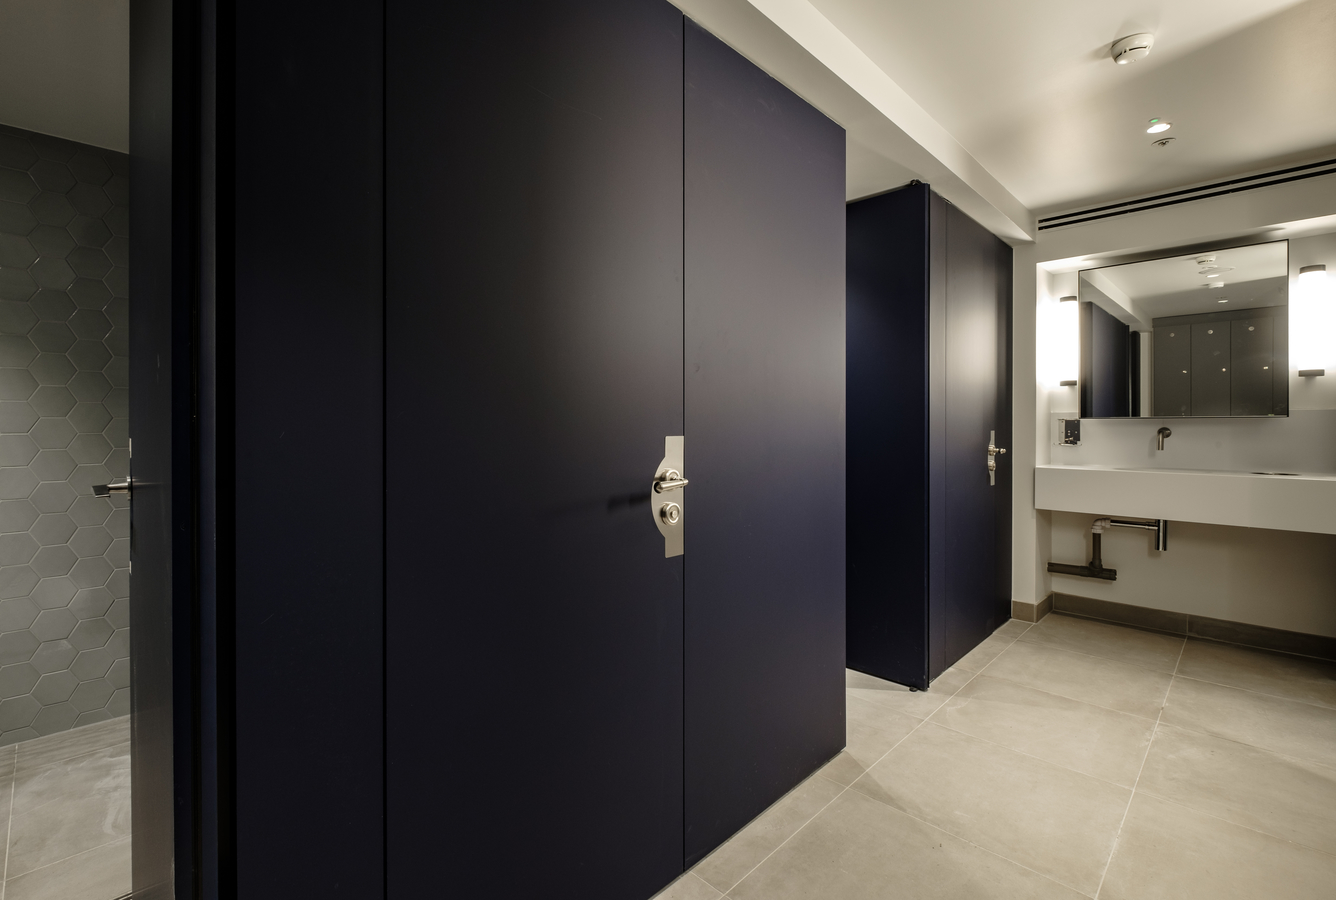 Blue Fenix laminate shower cubicles